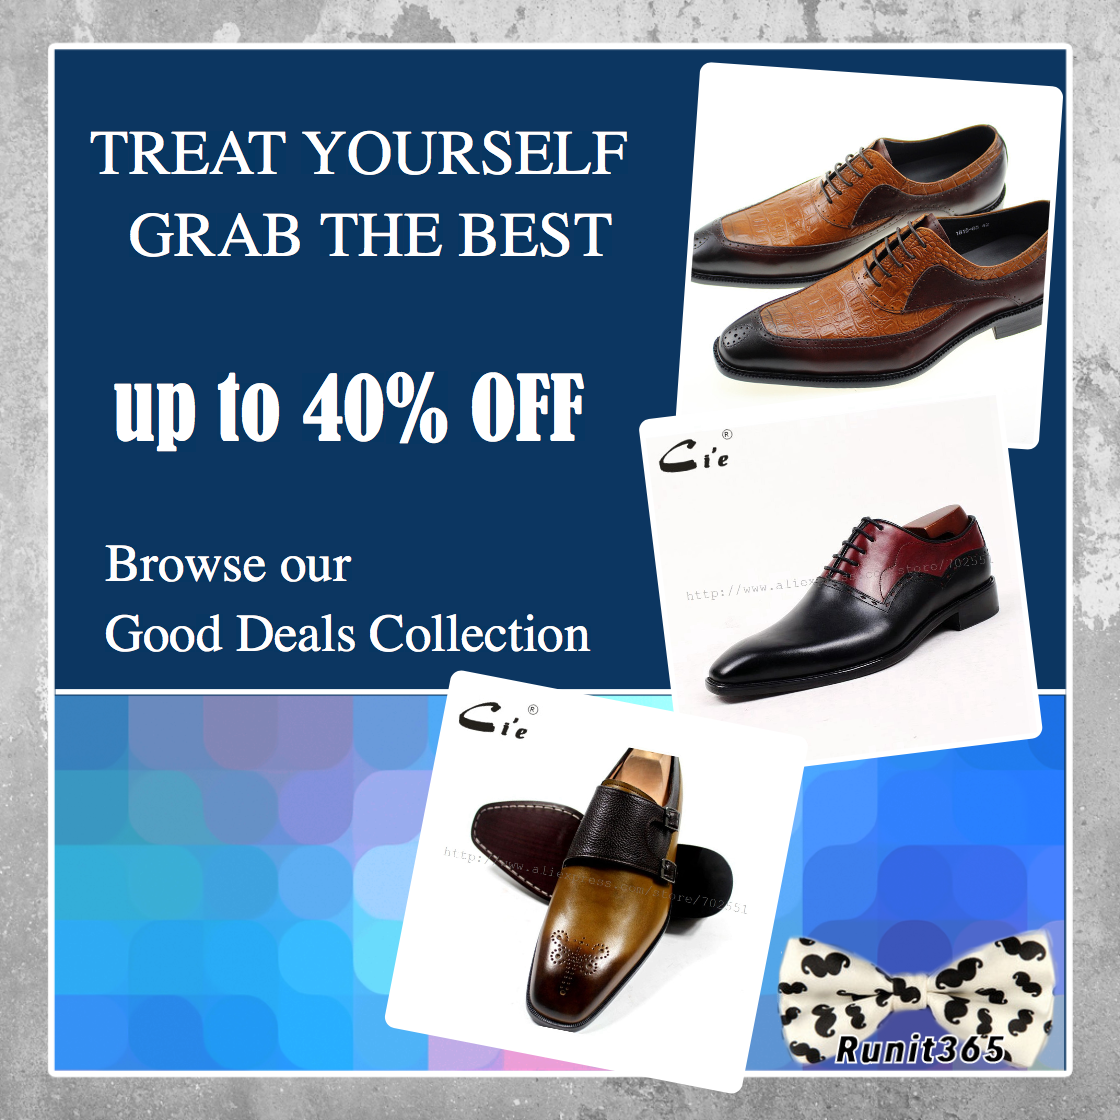 Don't miss our Winter SALE! Up to 40% off #runit365 #mensfashion #shoes #trendy